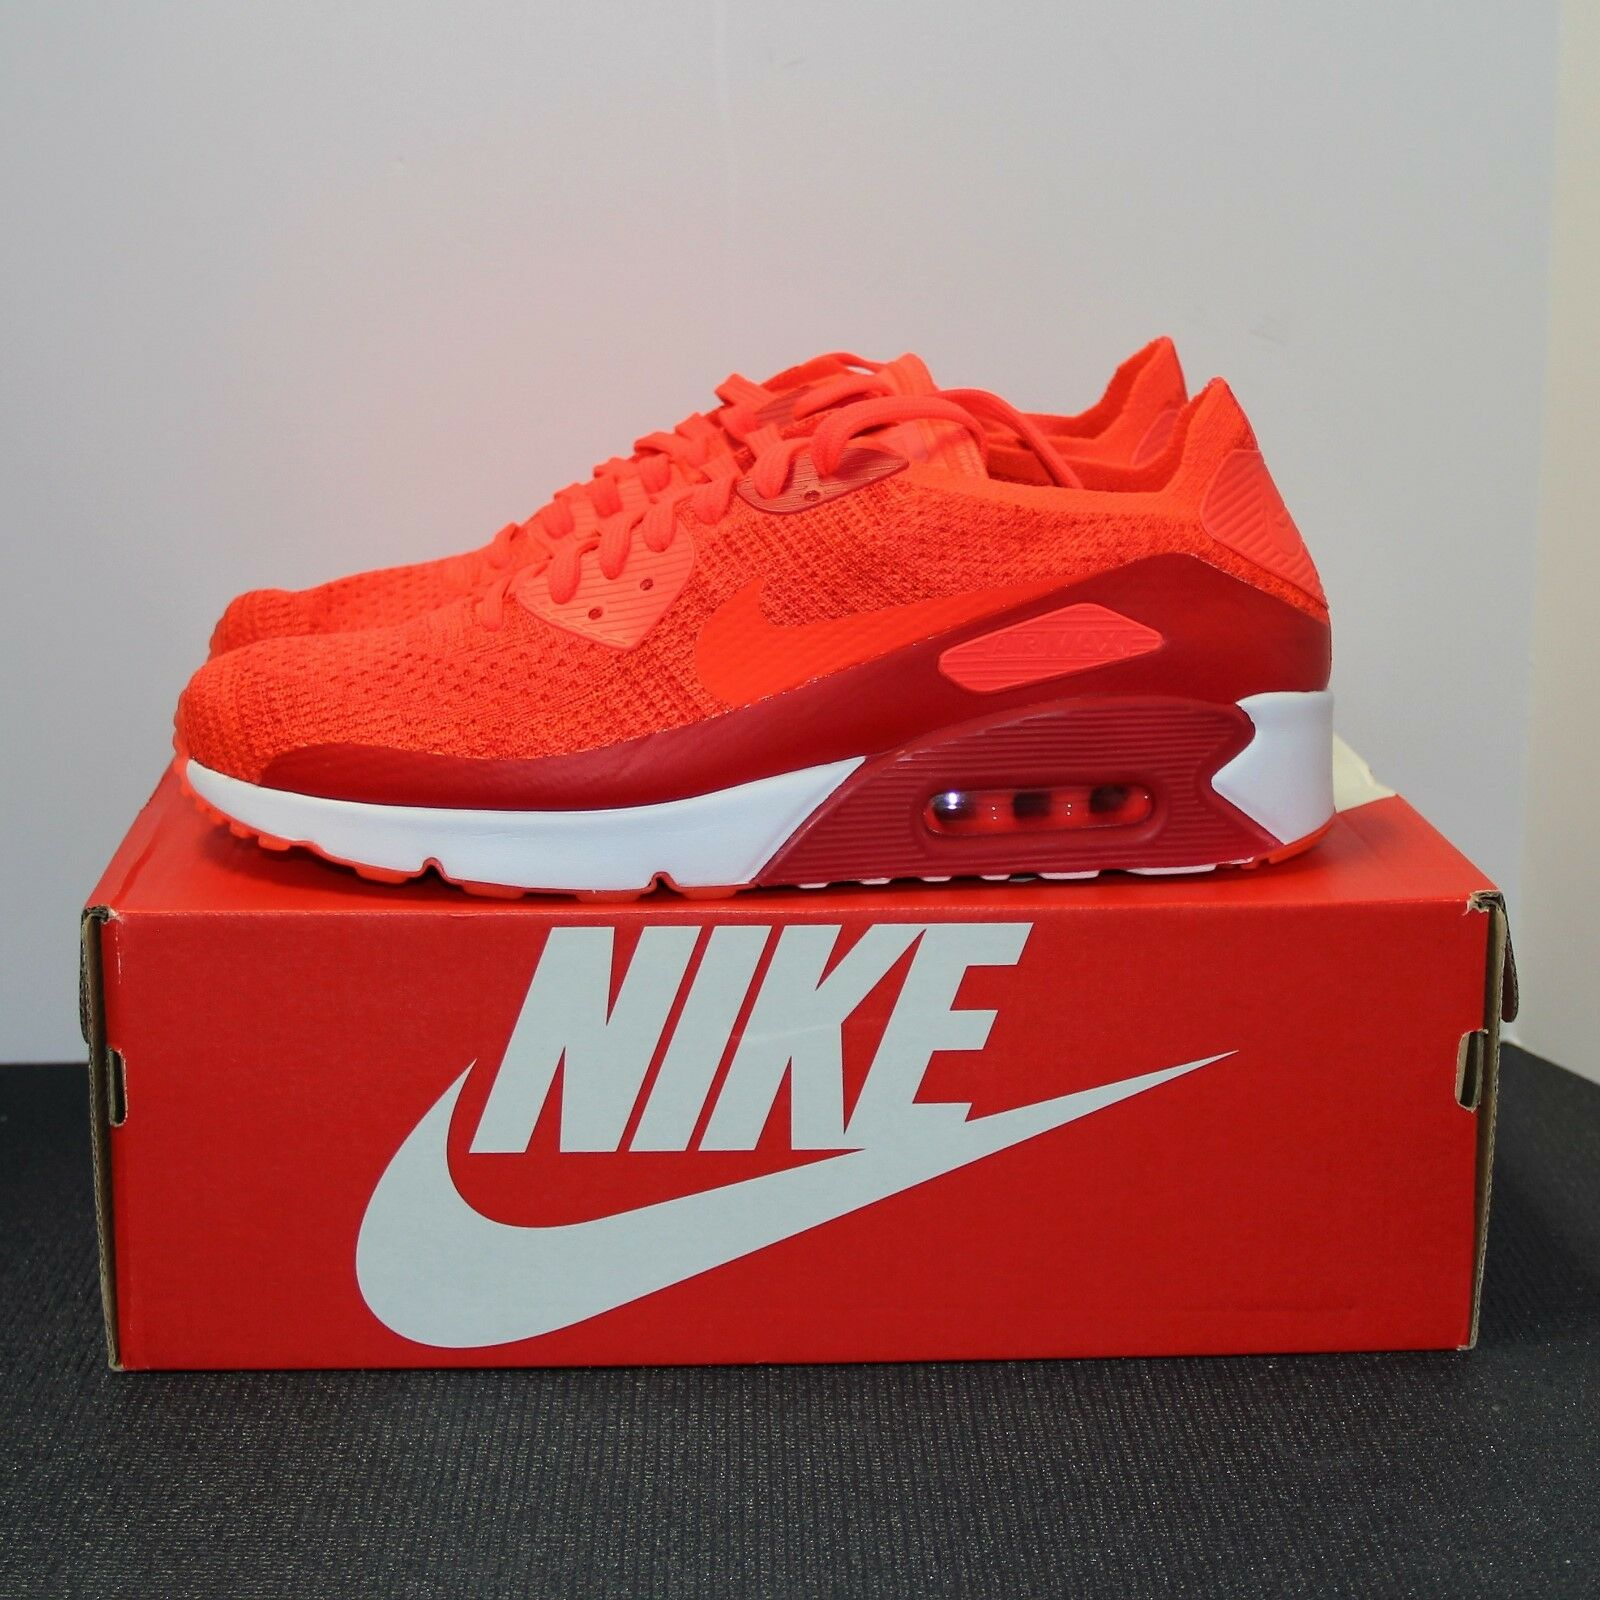 Nike Air Max 90 Ultra 2.0 Flyknit Bright Crimson Men's Size 10.5 Sneakers